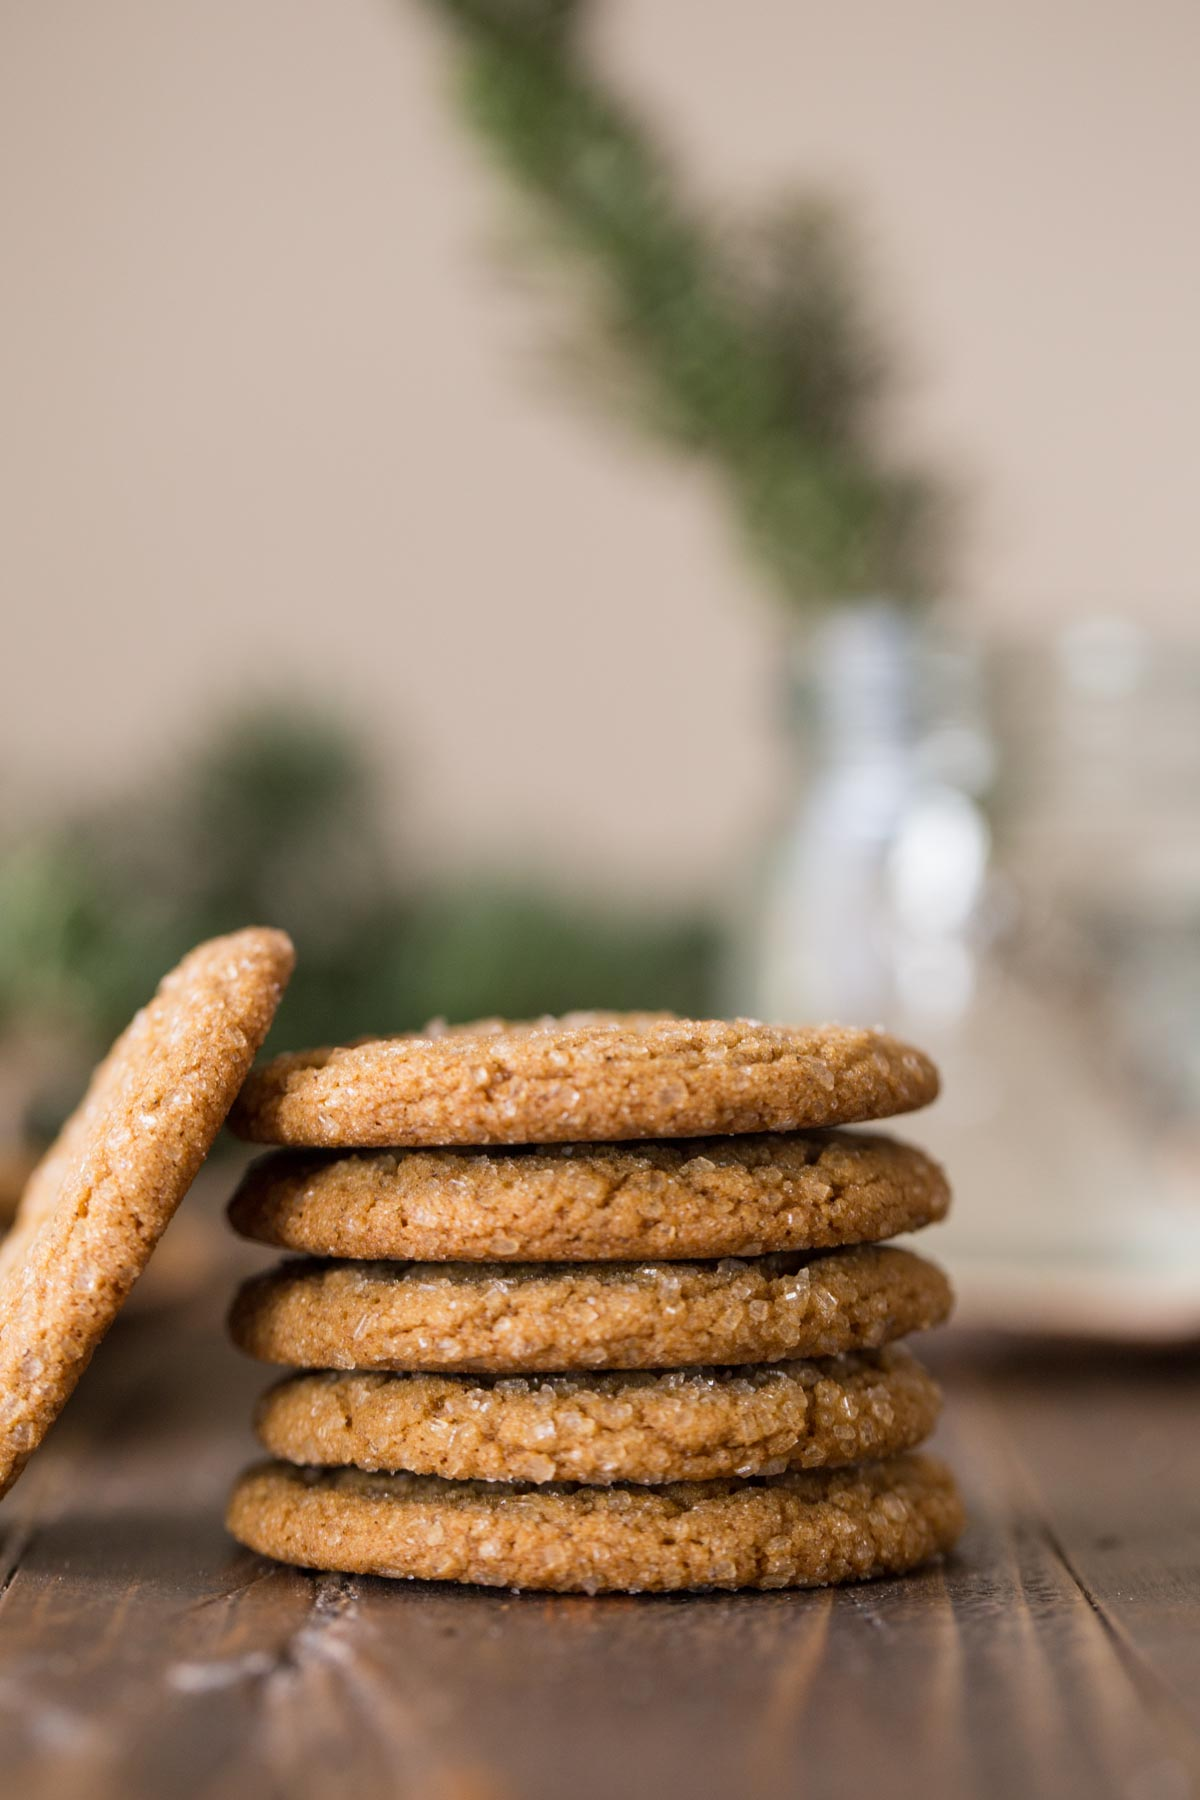 Five Old Fashioned Ginger Snaps stacked on top of each other, with one Old Fashioned Ginger Snap leaning against the stack.